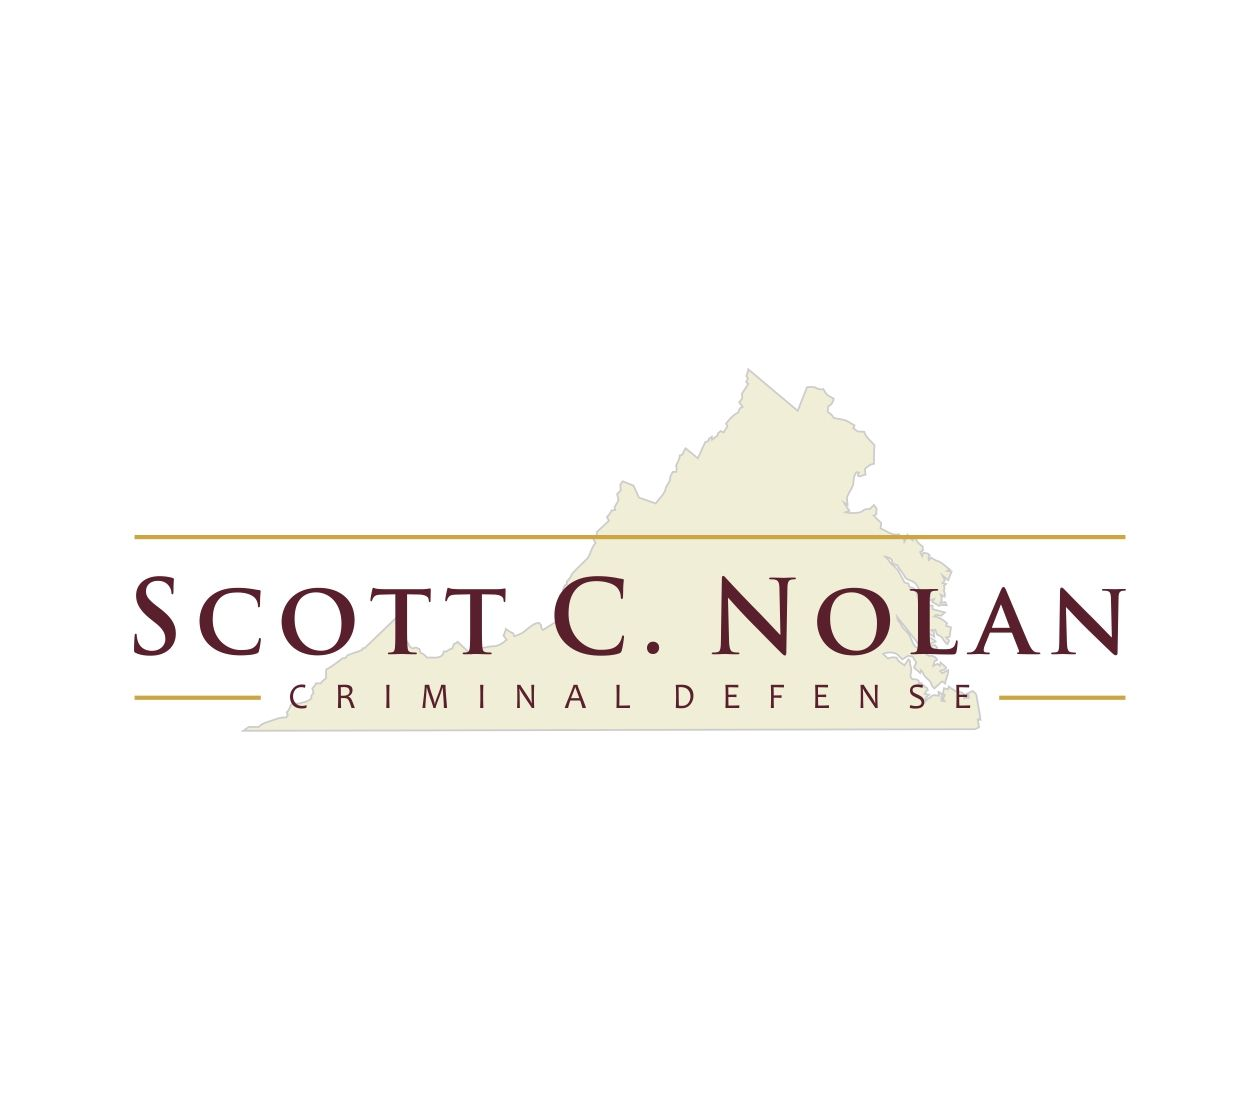 Scott Nolan | Carluzzo, Rochkind & Smith, P.C. is the Criminal Defense Attorney in Manassas, VA to Hire During These Tough Times